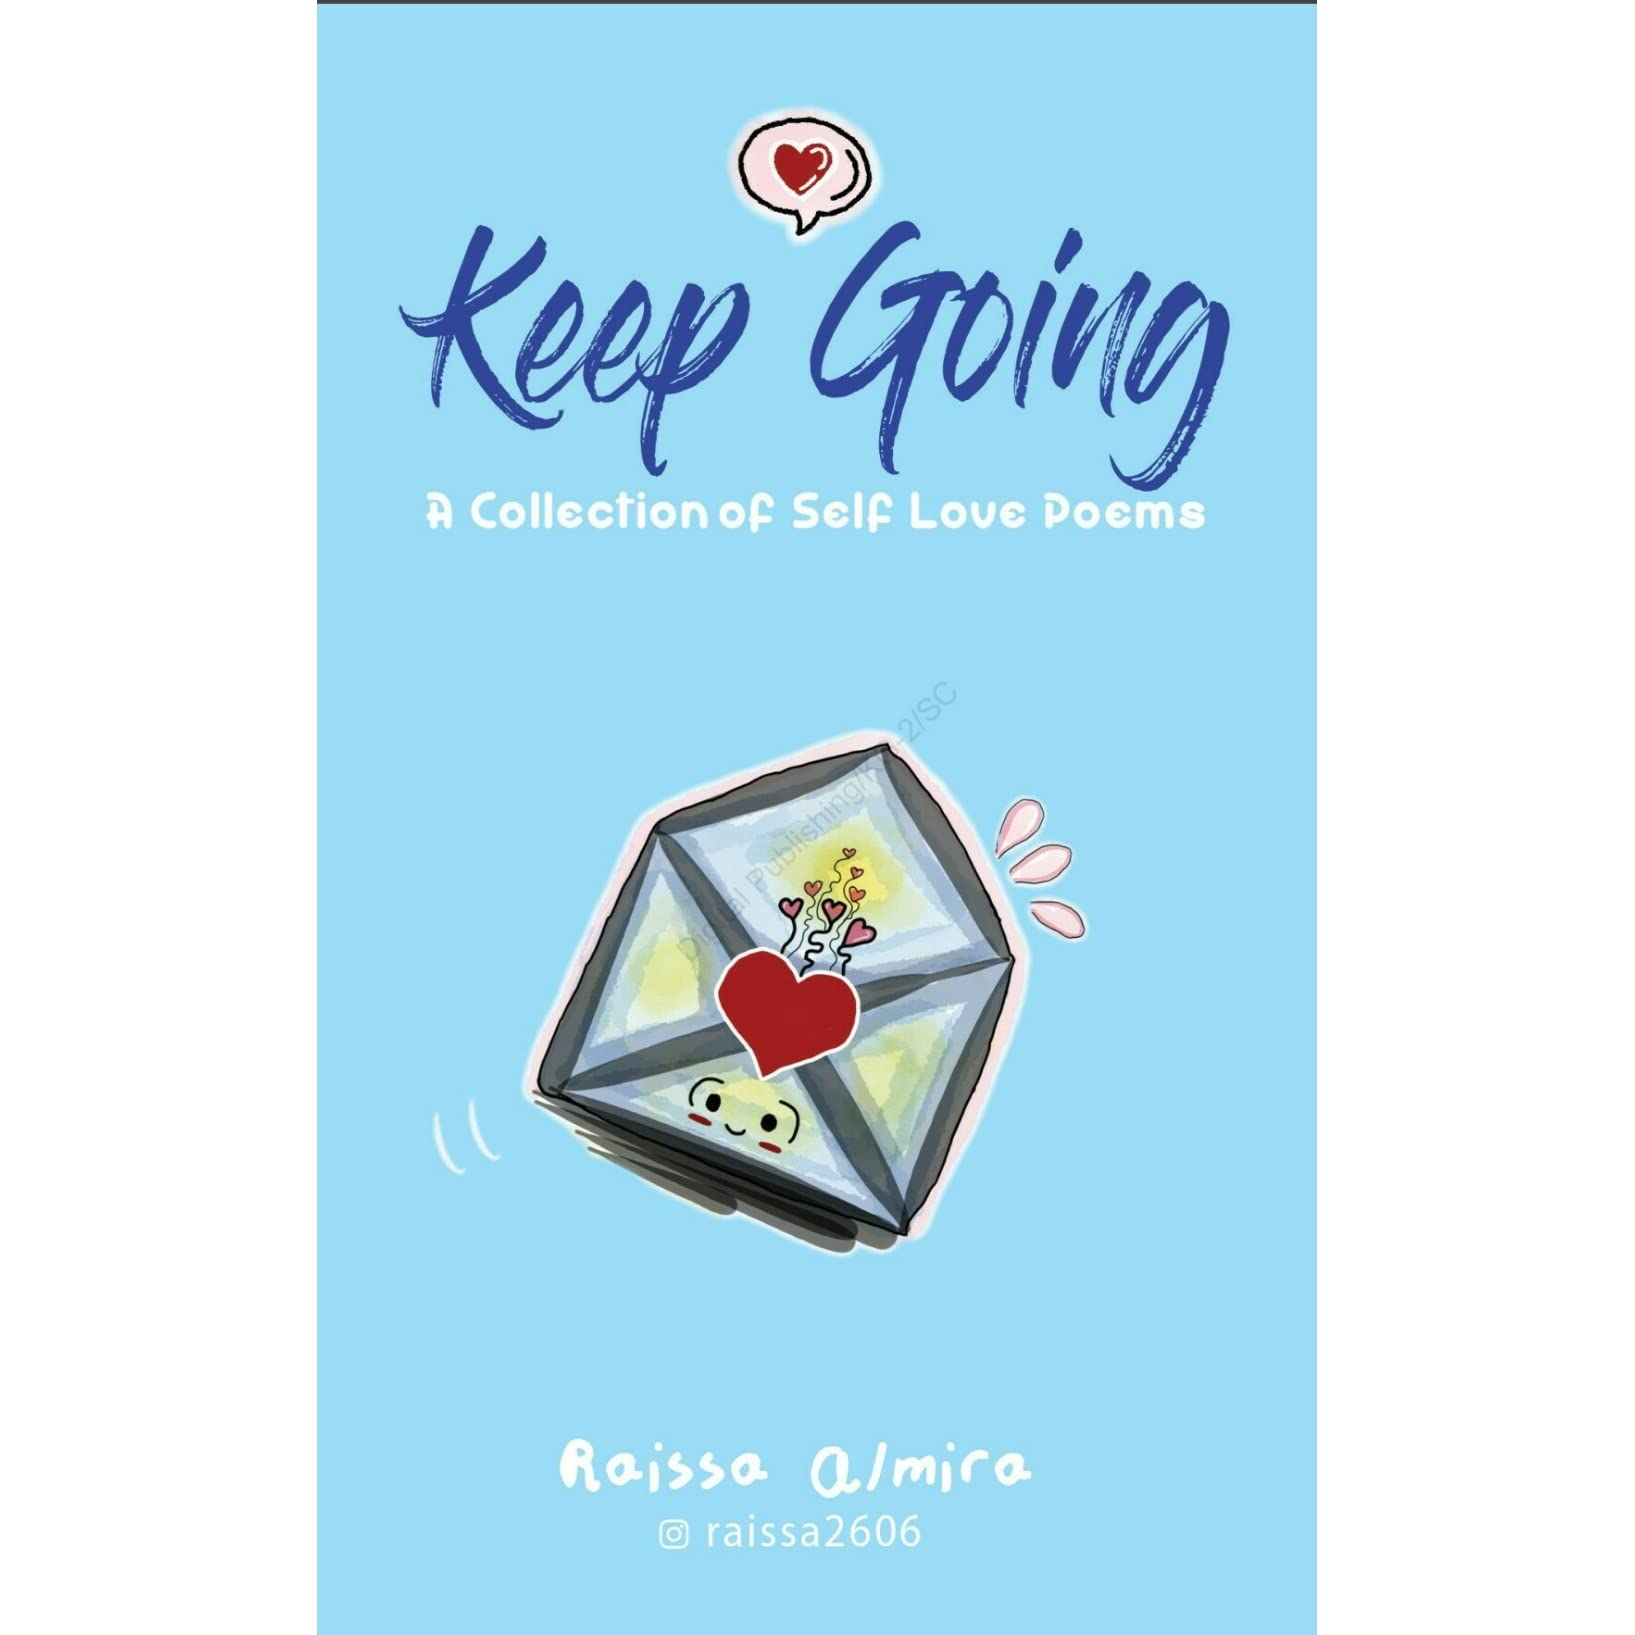 Keep Going A Collection Of Self Love Poems By Raissa Almira